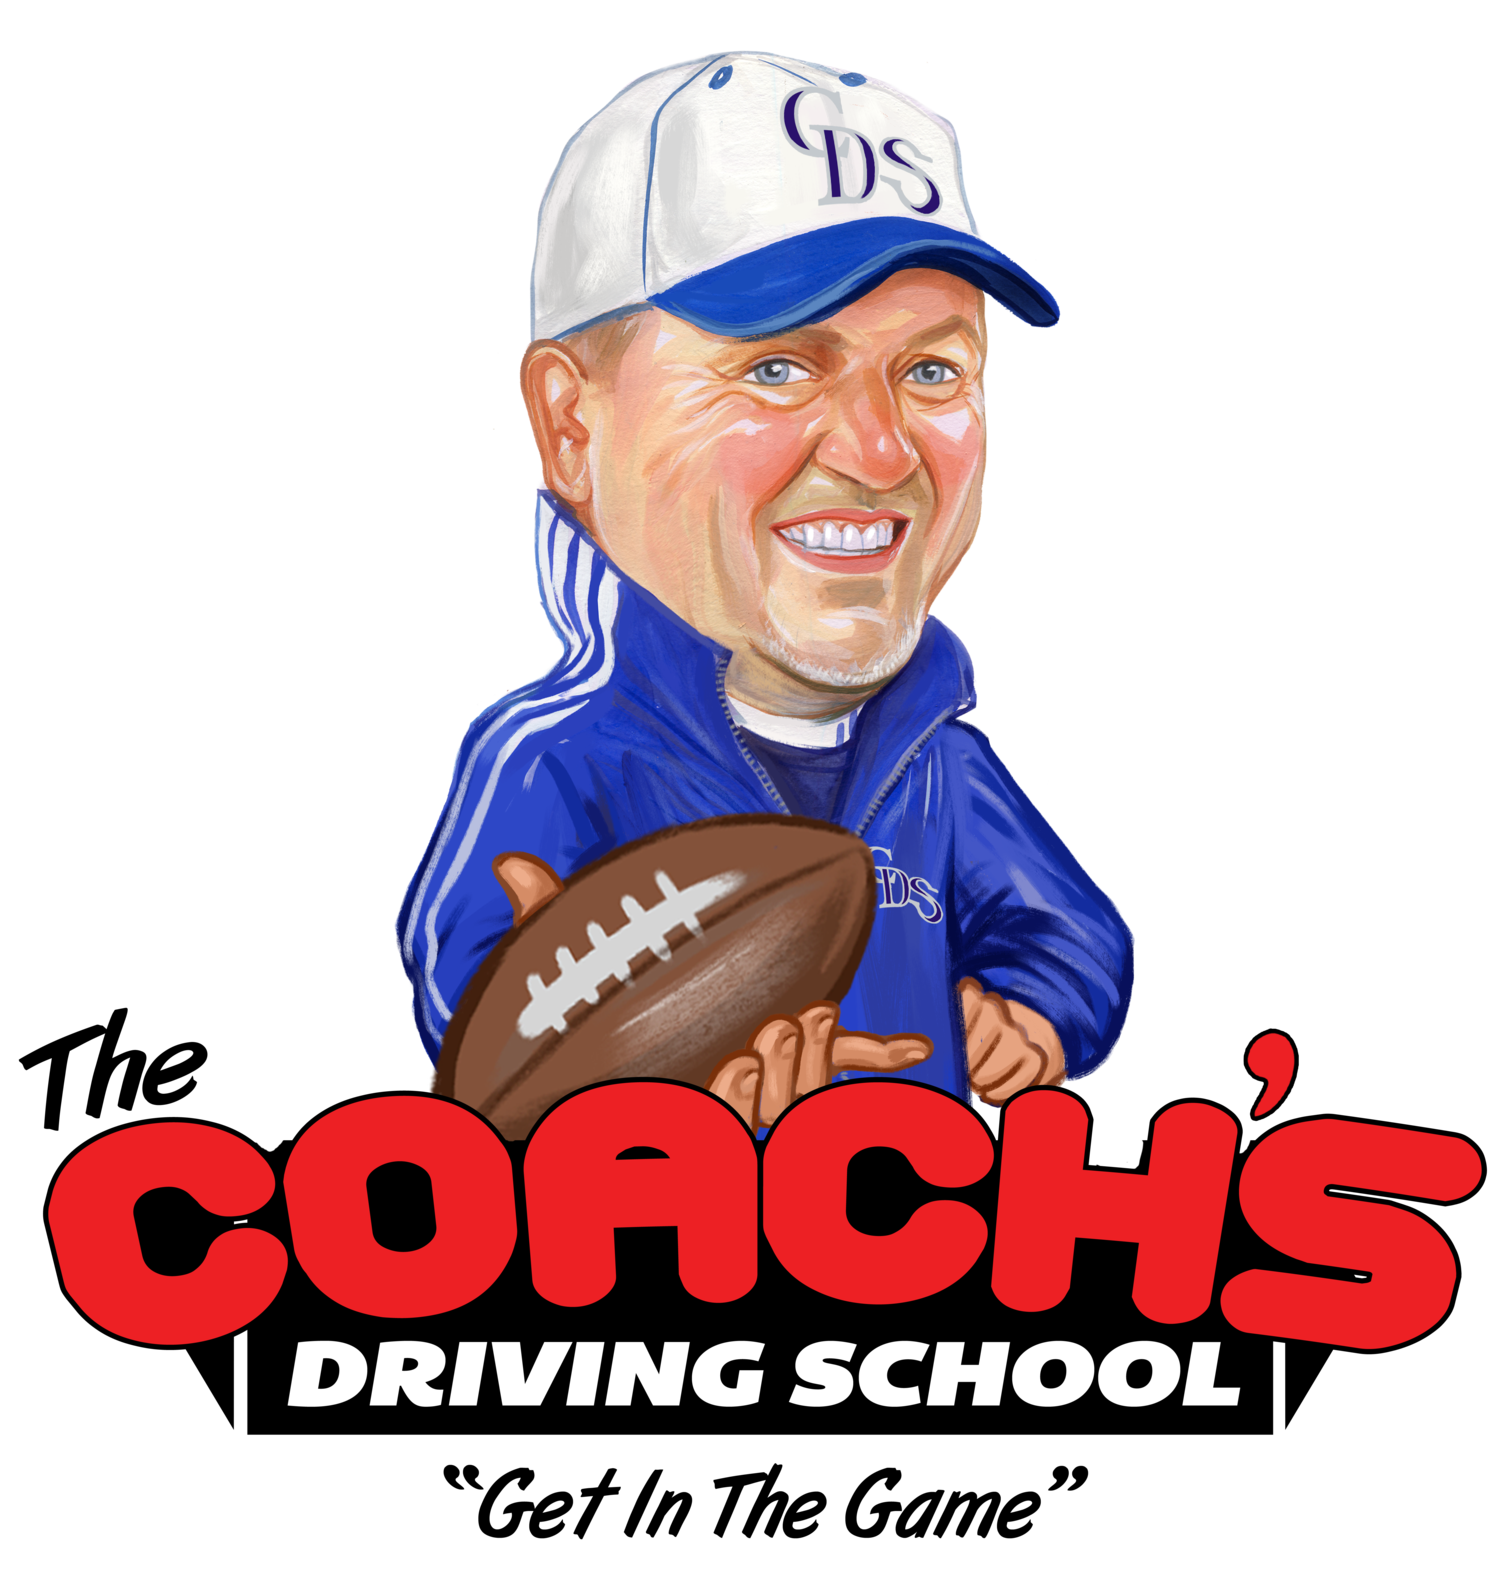 The Coach's Driving School